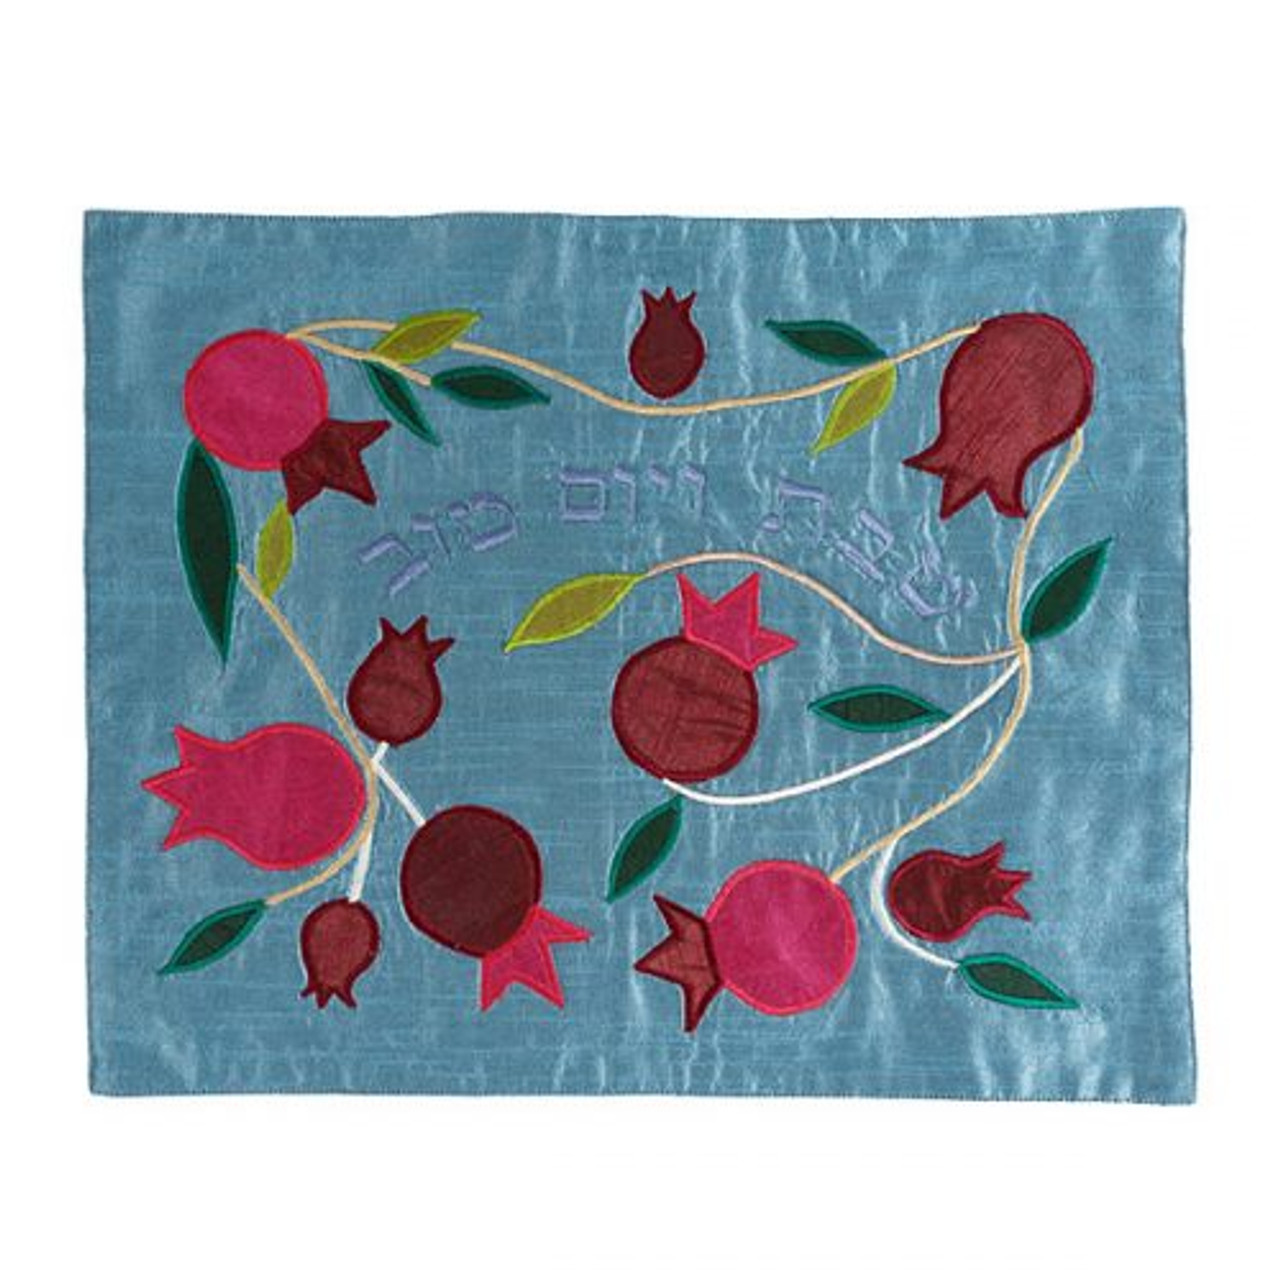 Pomegranate and Vine on Turquoise Raw Silk Applique Challah Cover.